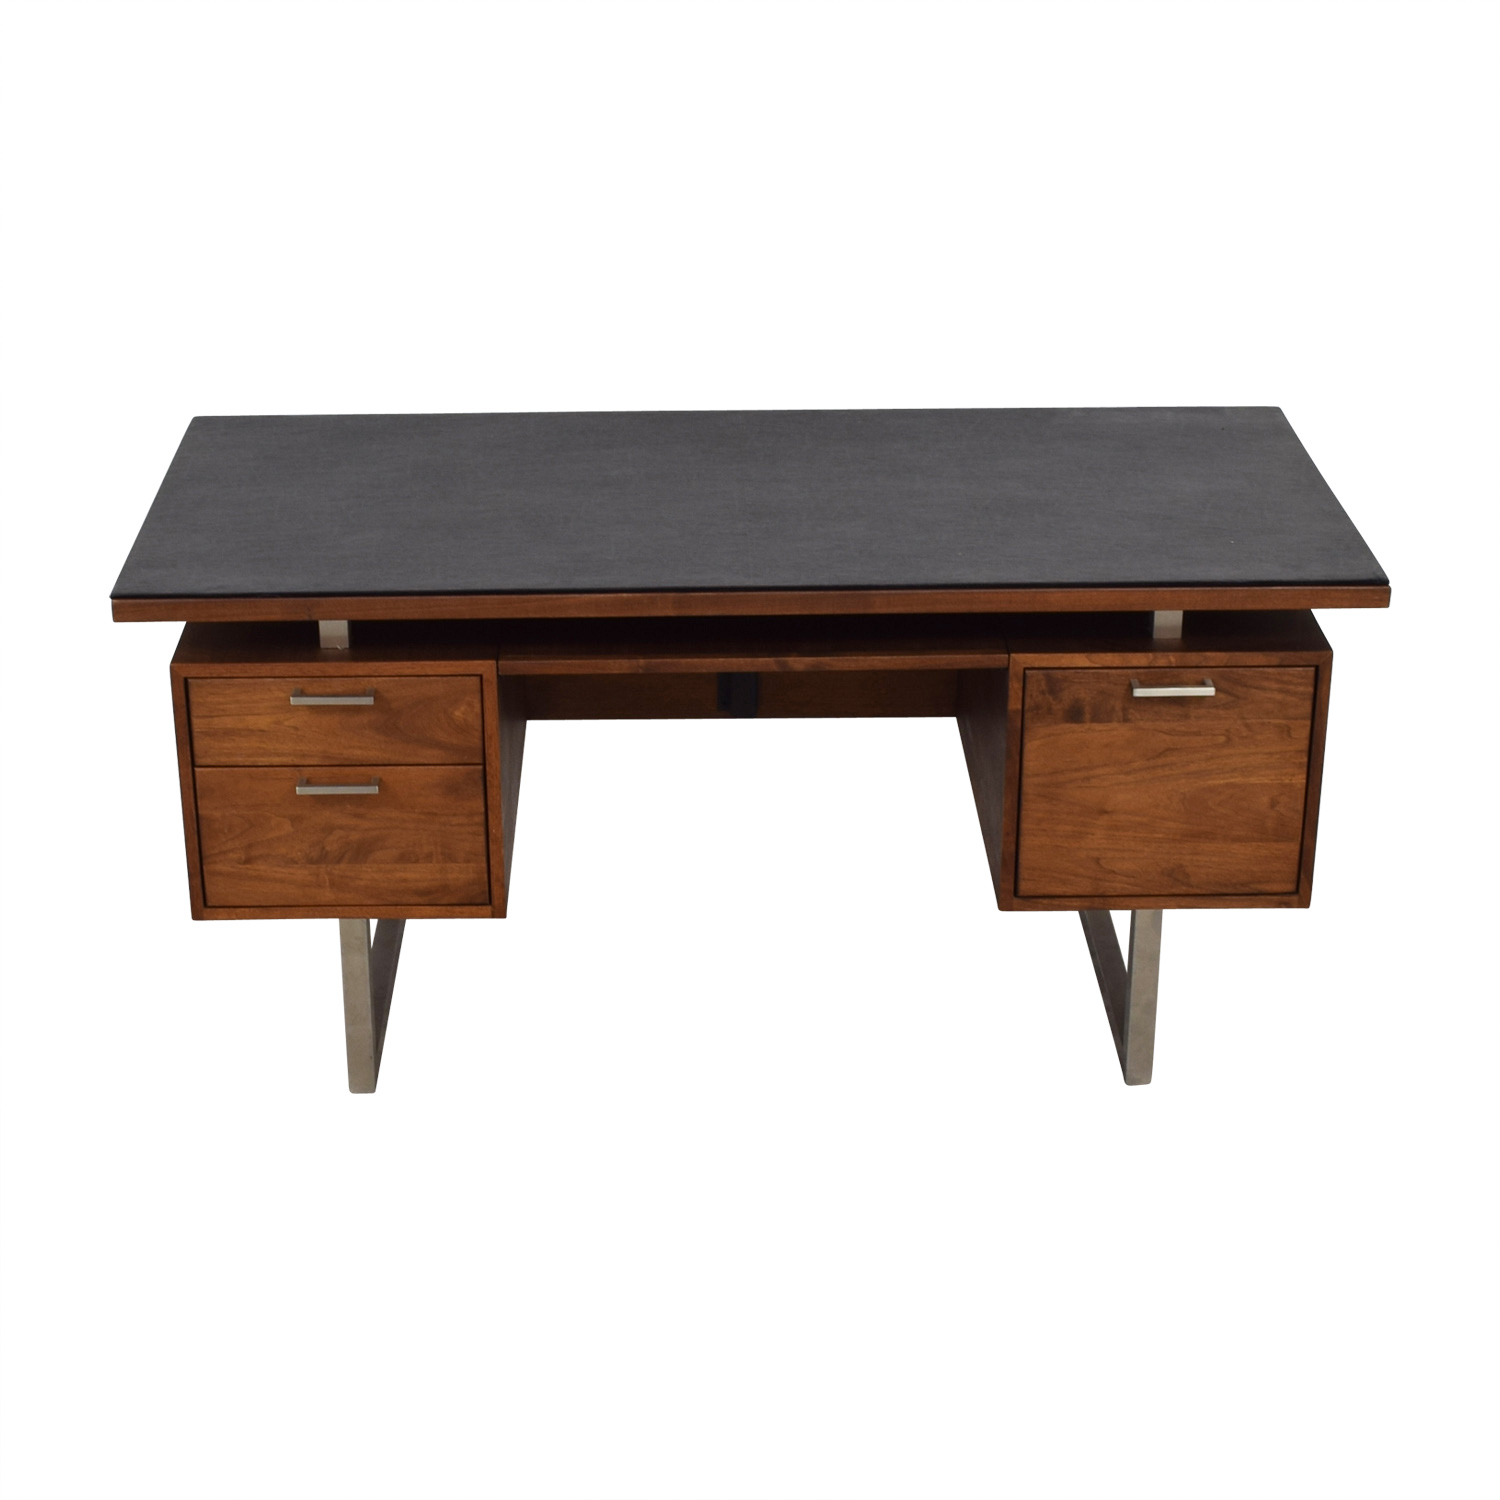 Crate & Barrel Crate & Barrel Clybourn Walnut Executive Desk discount